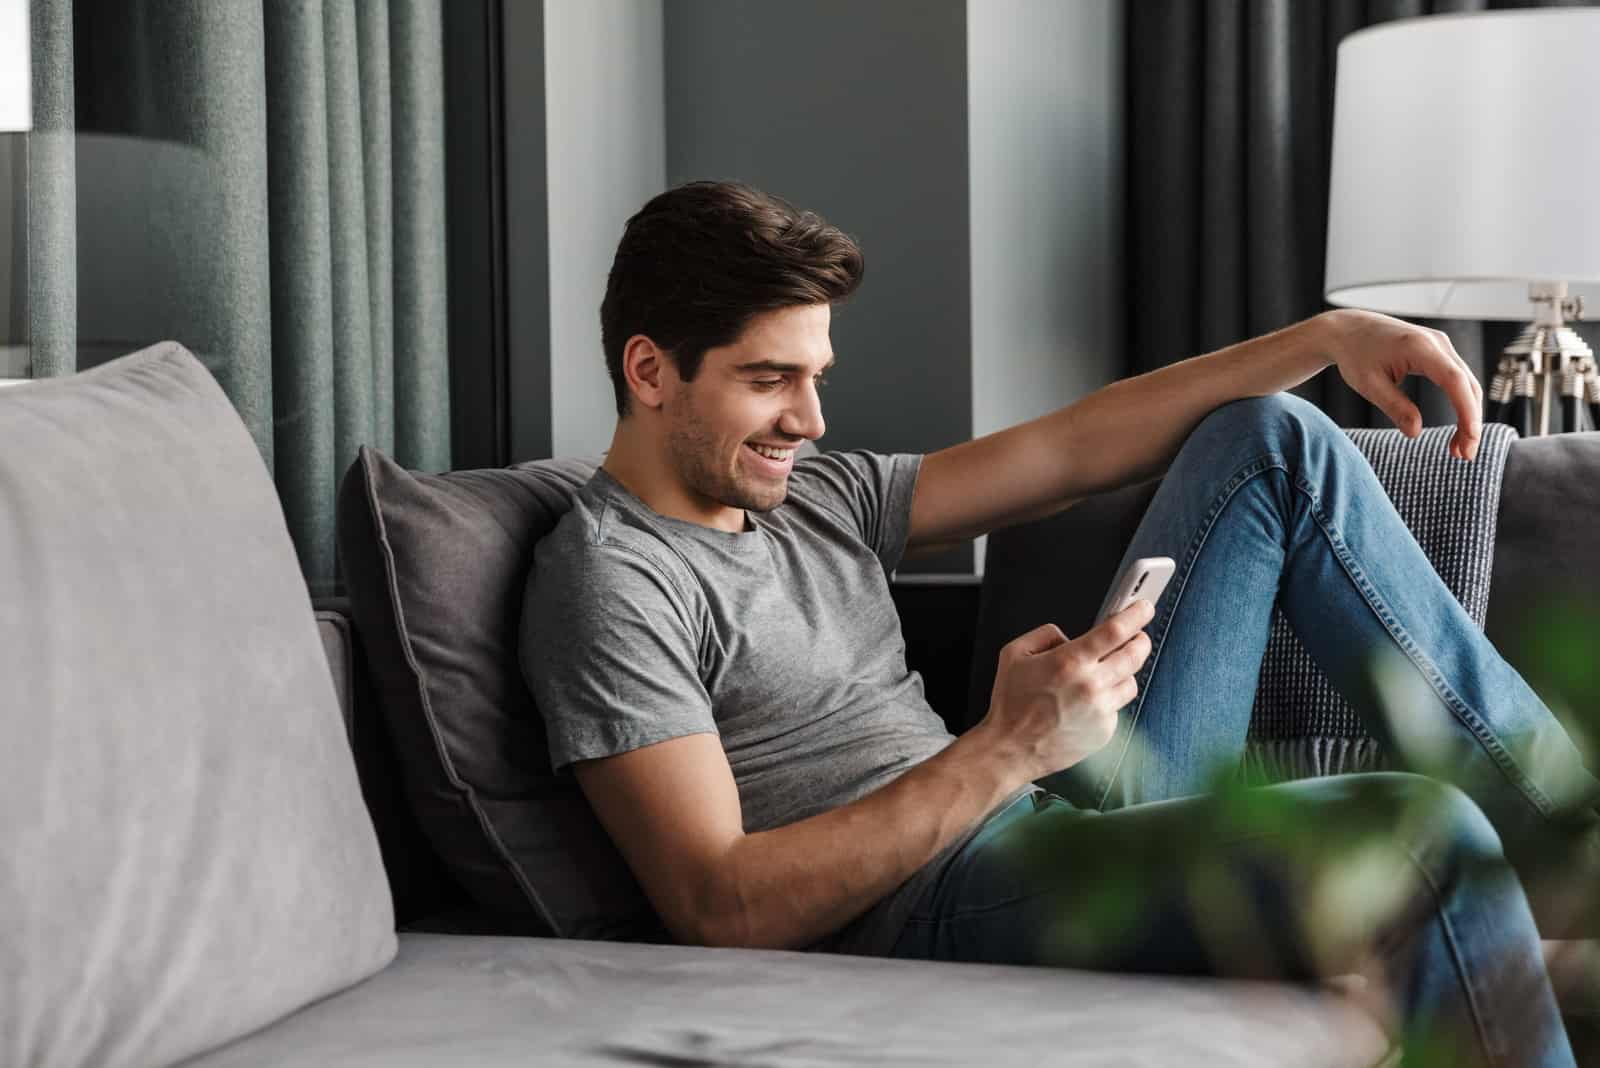 a smiling man sits on the couch and keys on the phone